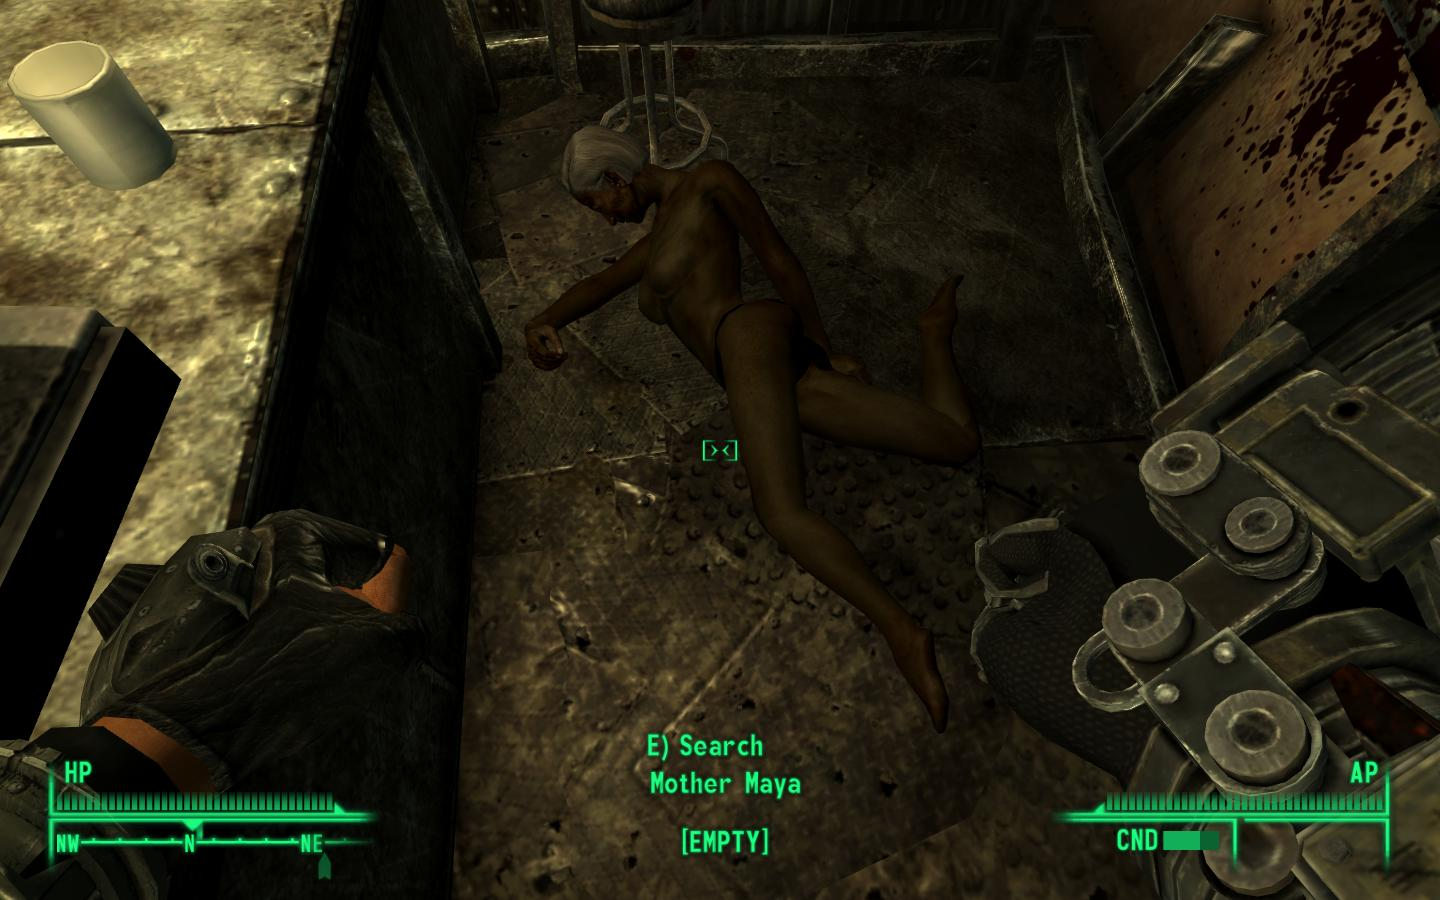 fallout nude glorious female mod 4 Bedknobs and broomsticks king leonidas